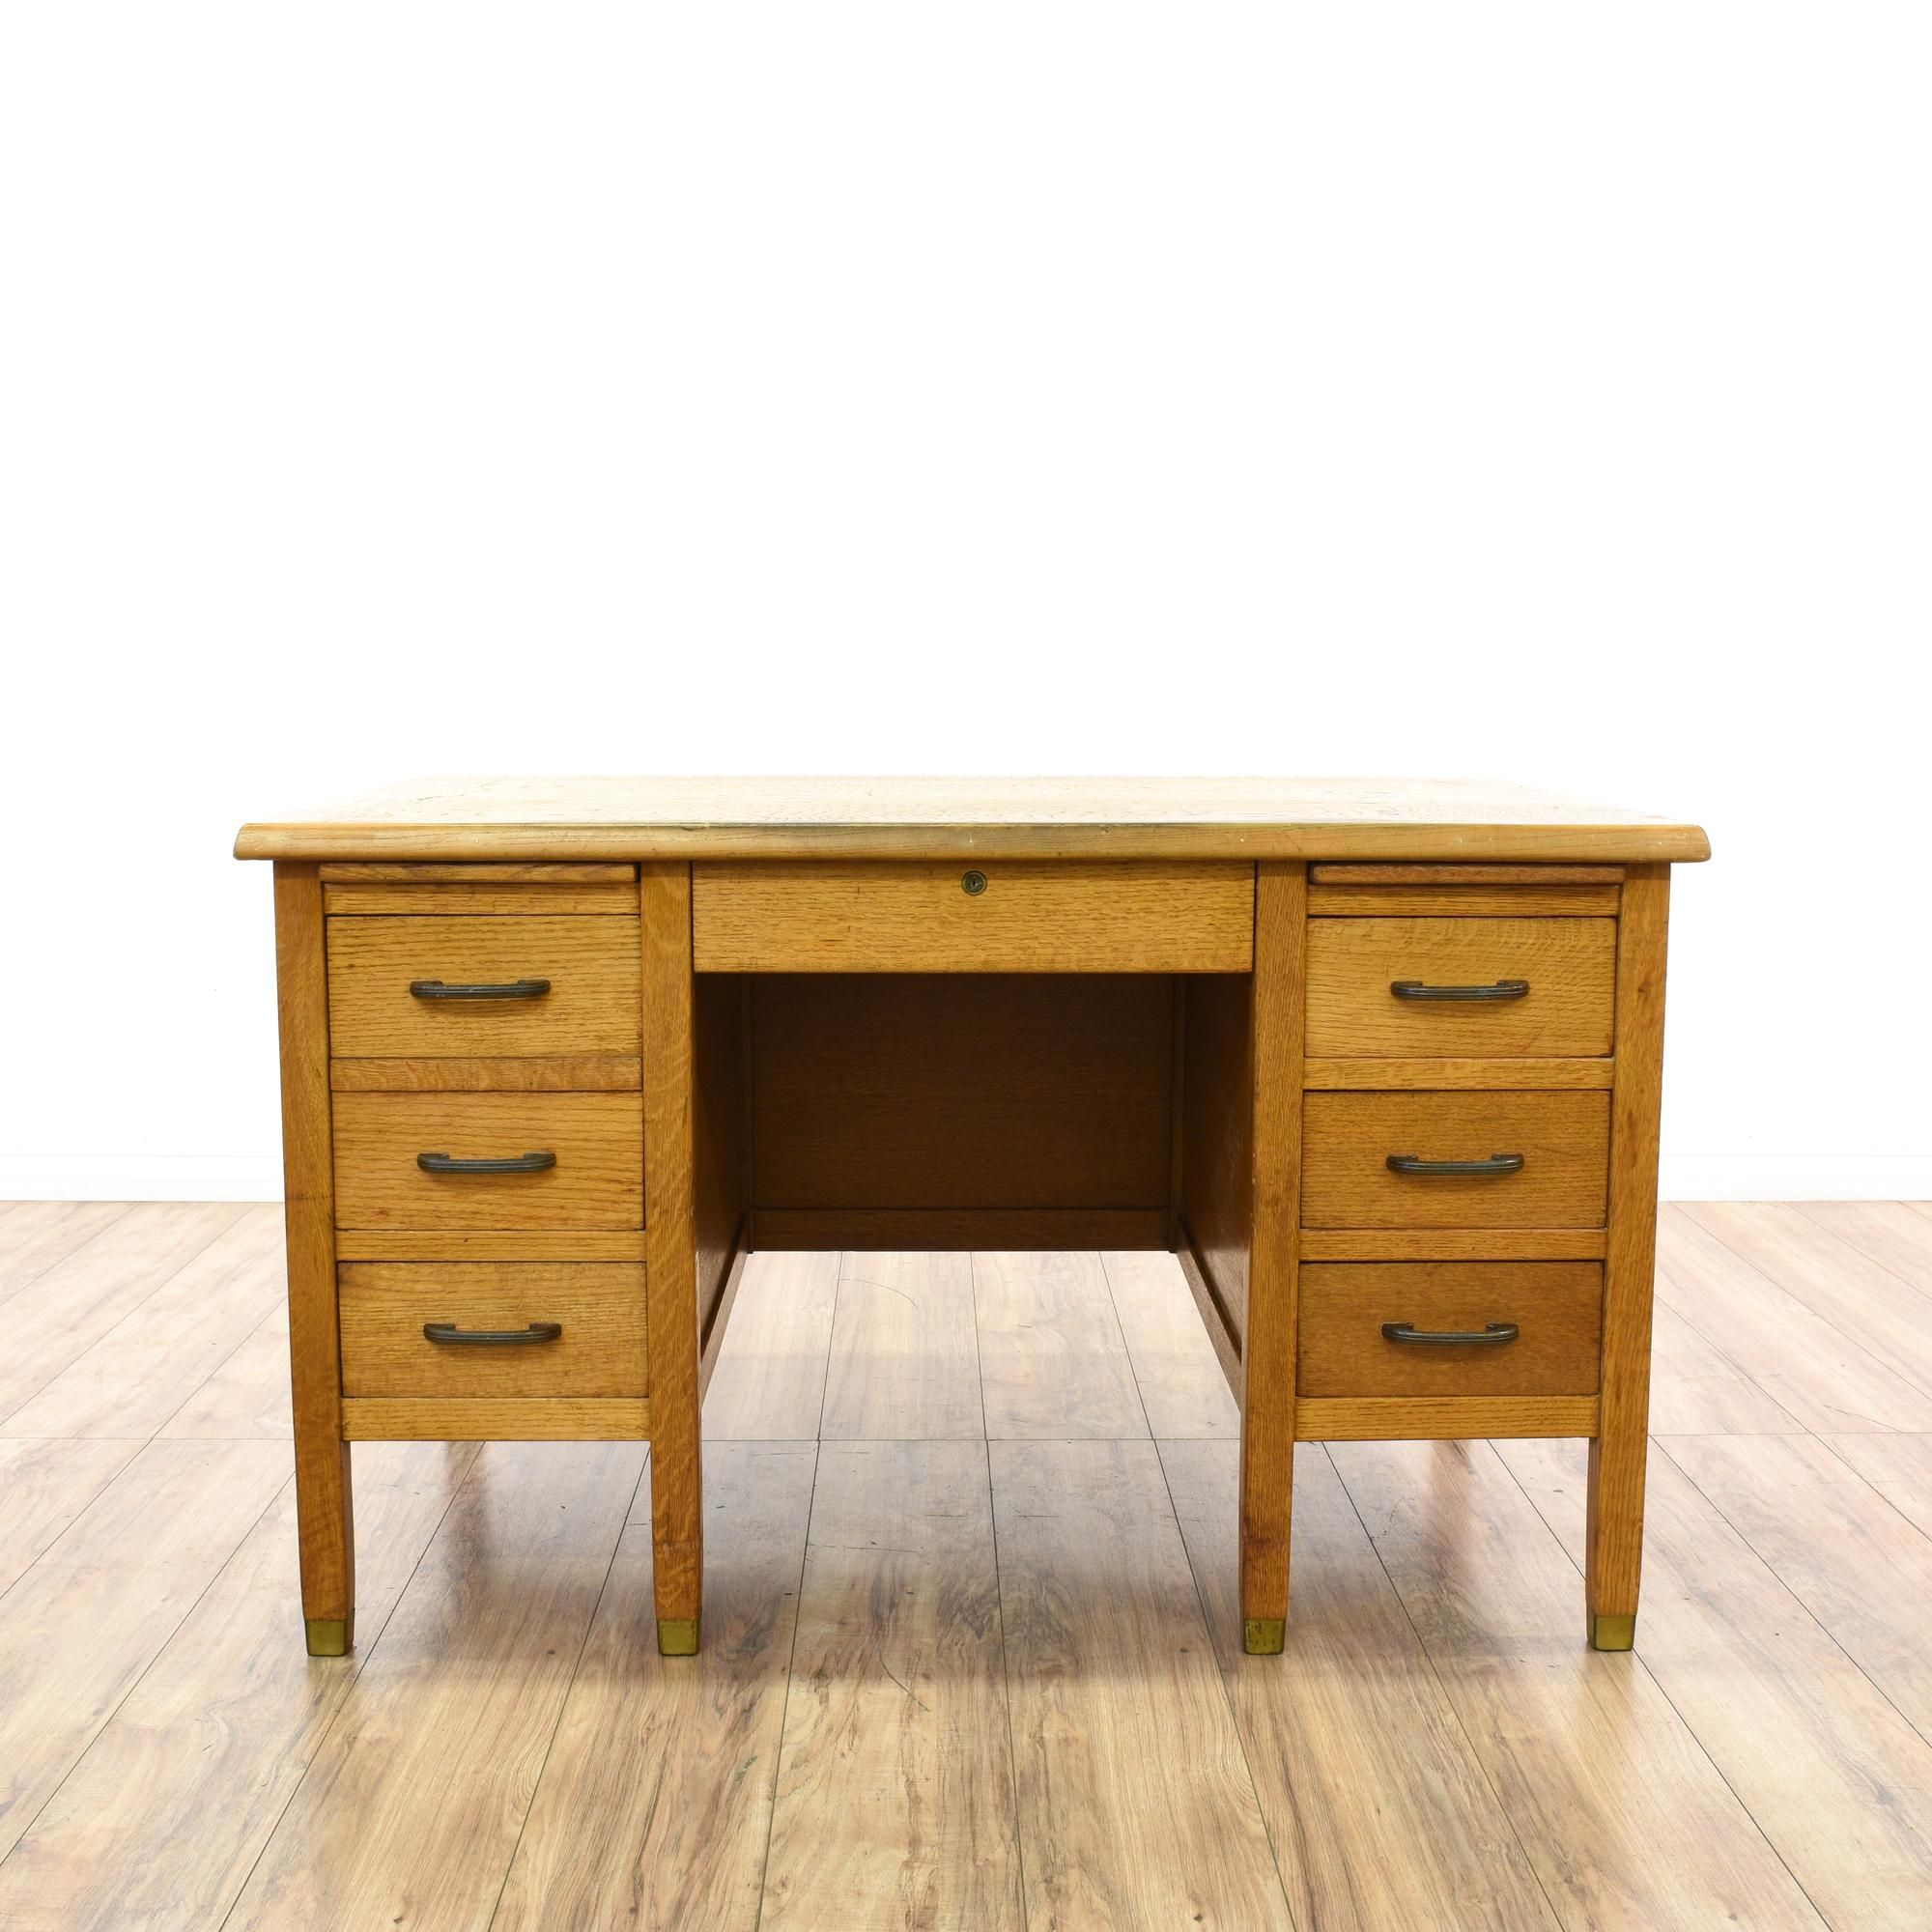 This Large Vintage School Teacher Desk Is Featured In A Solid Wood With A Light Oak Finish This Tanker Desk Has 6 Draw Desk Vintage Furniture Furniture Design